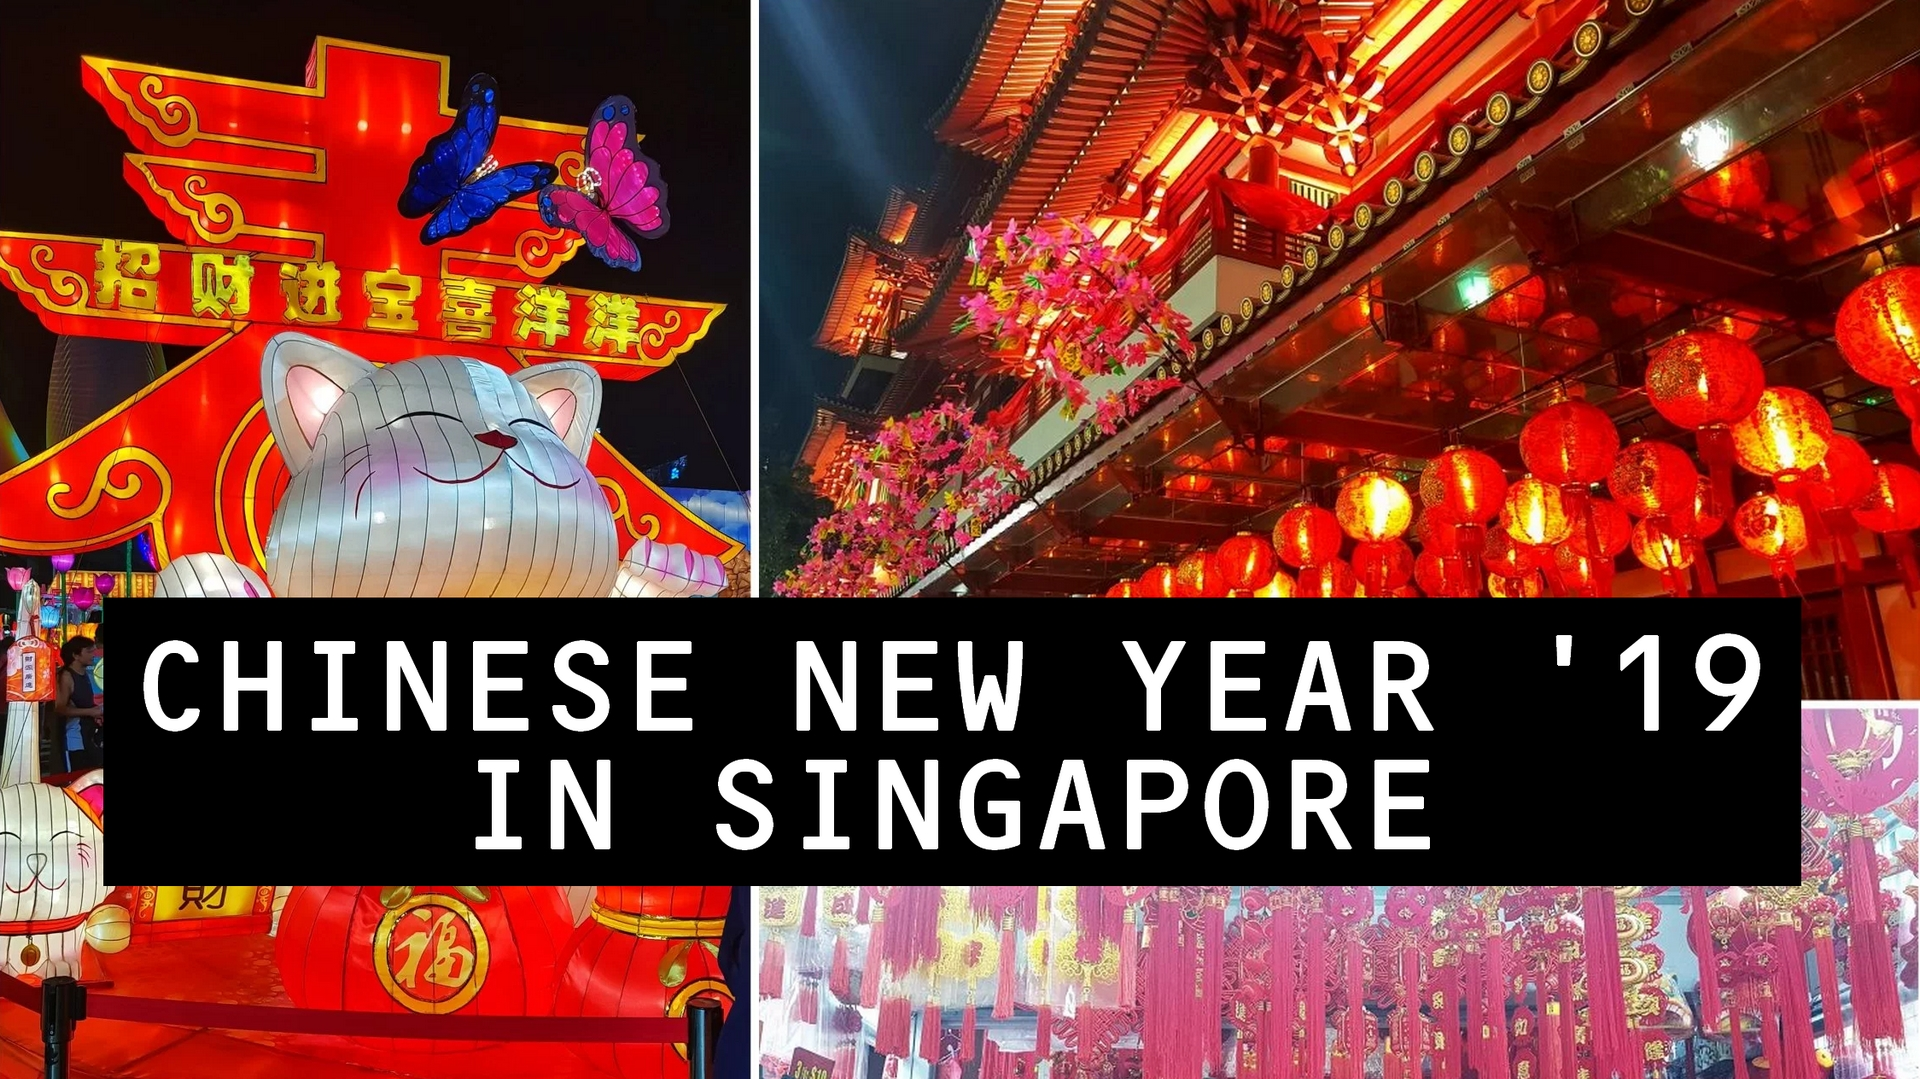 Happy Chinese New Year '19 From Singapore!